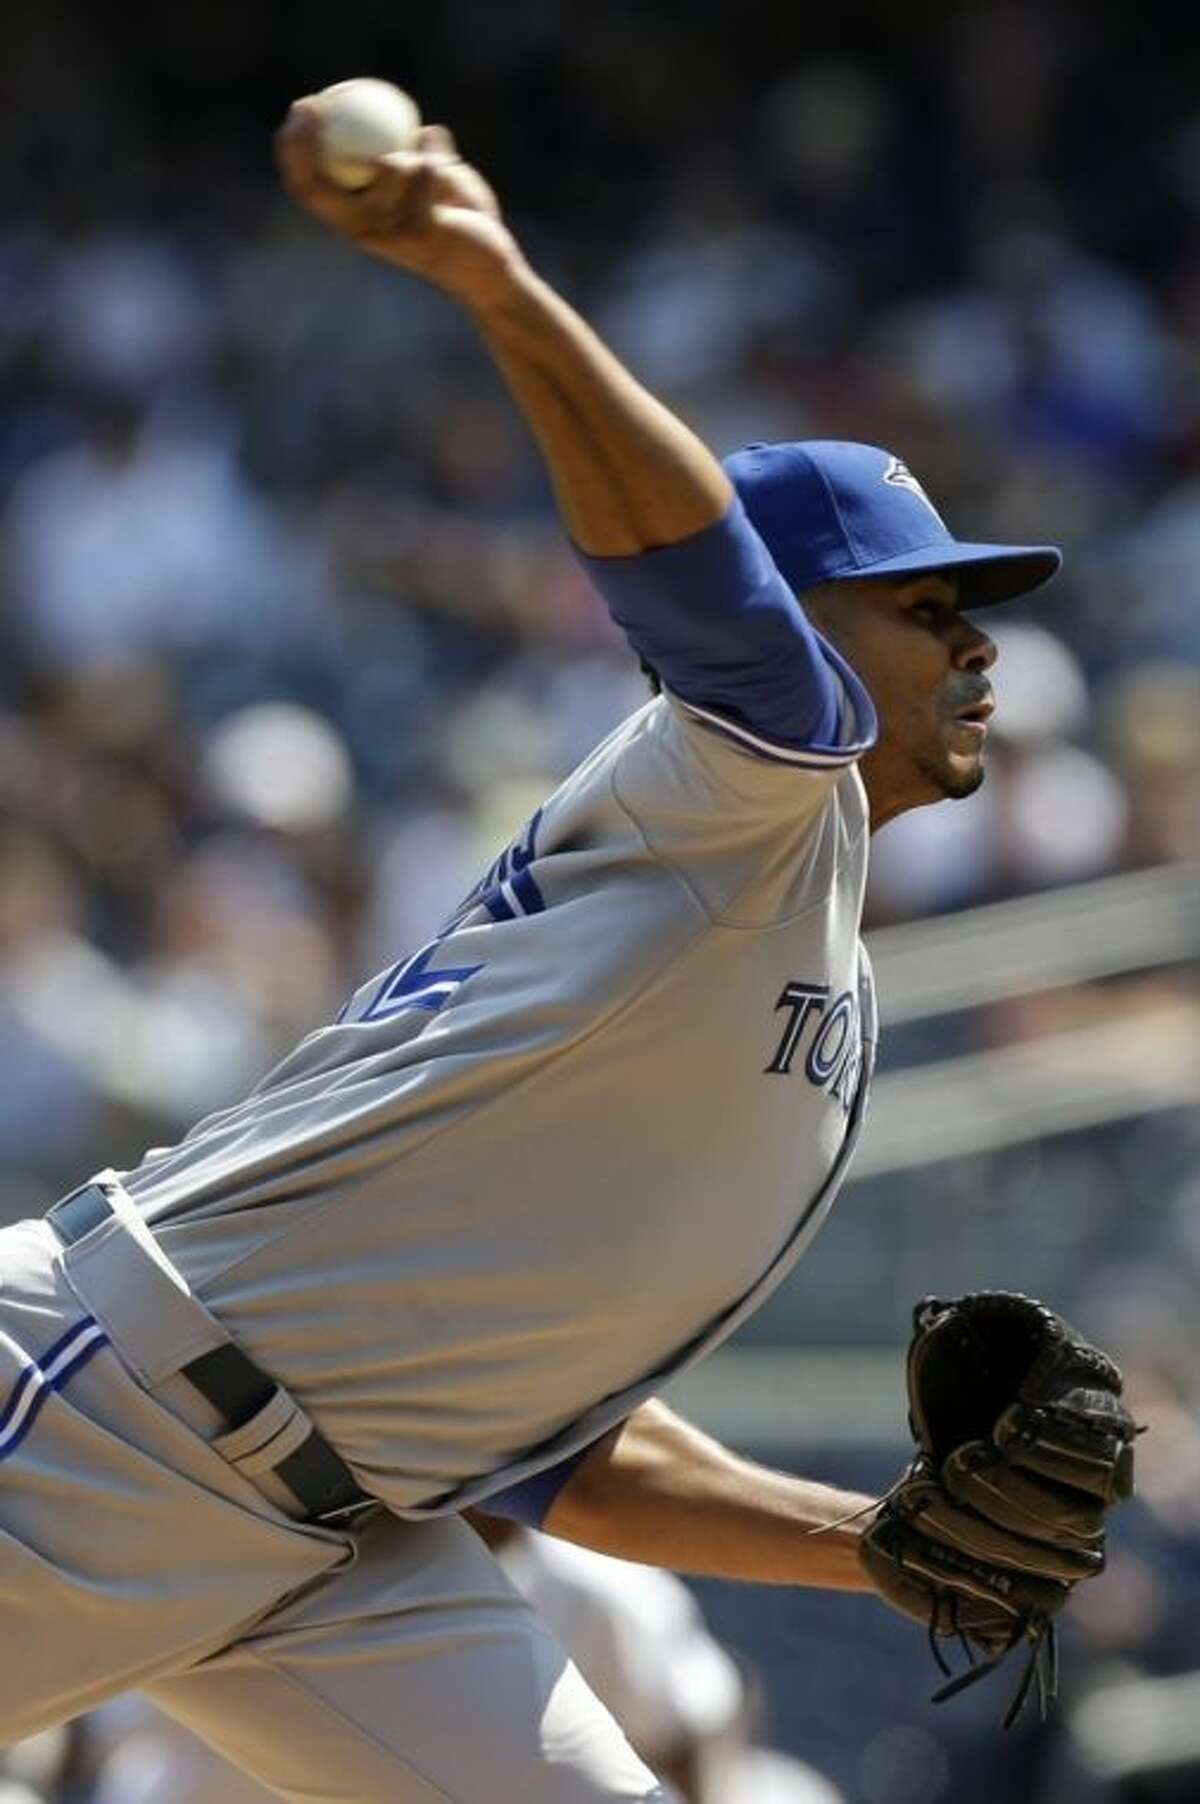 Toronto Blue Jays pitcher Esmil Rogers pitches during the second inning of a baseball game against the New York Yankees at Yankee Stadium Tuesday, Aug. 20, 2013 in New York. (AP Photo/Seth Wenig)